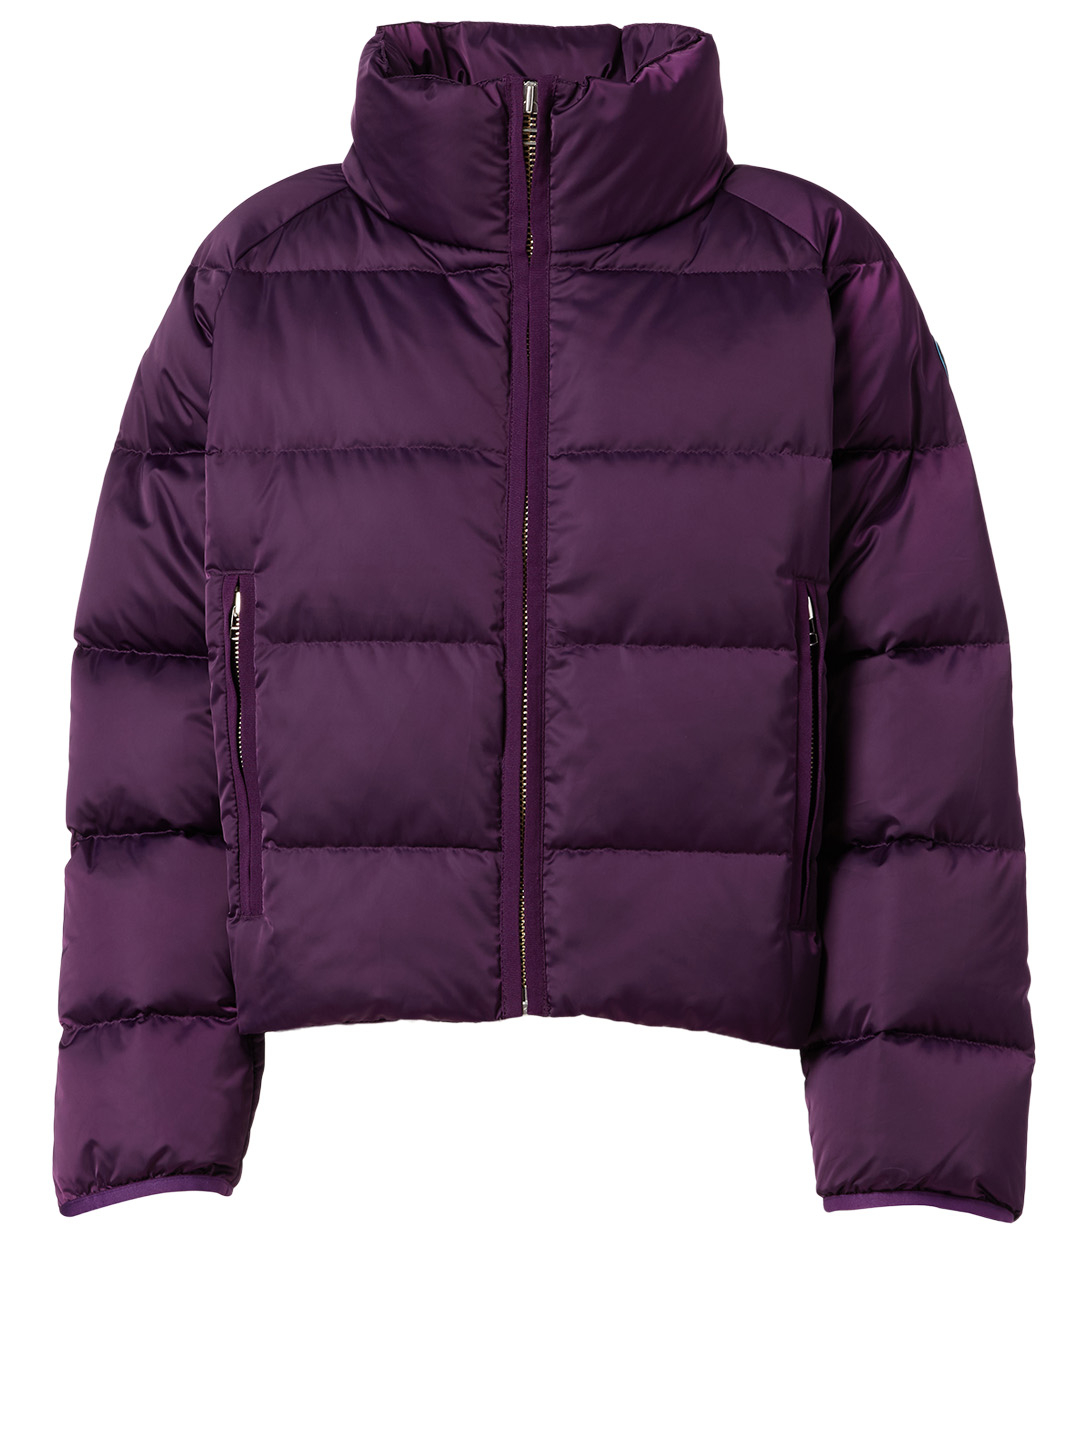 TORY SPORT Satin Cropped Down Puffer Jacket Women's Purple